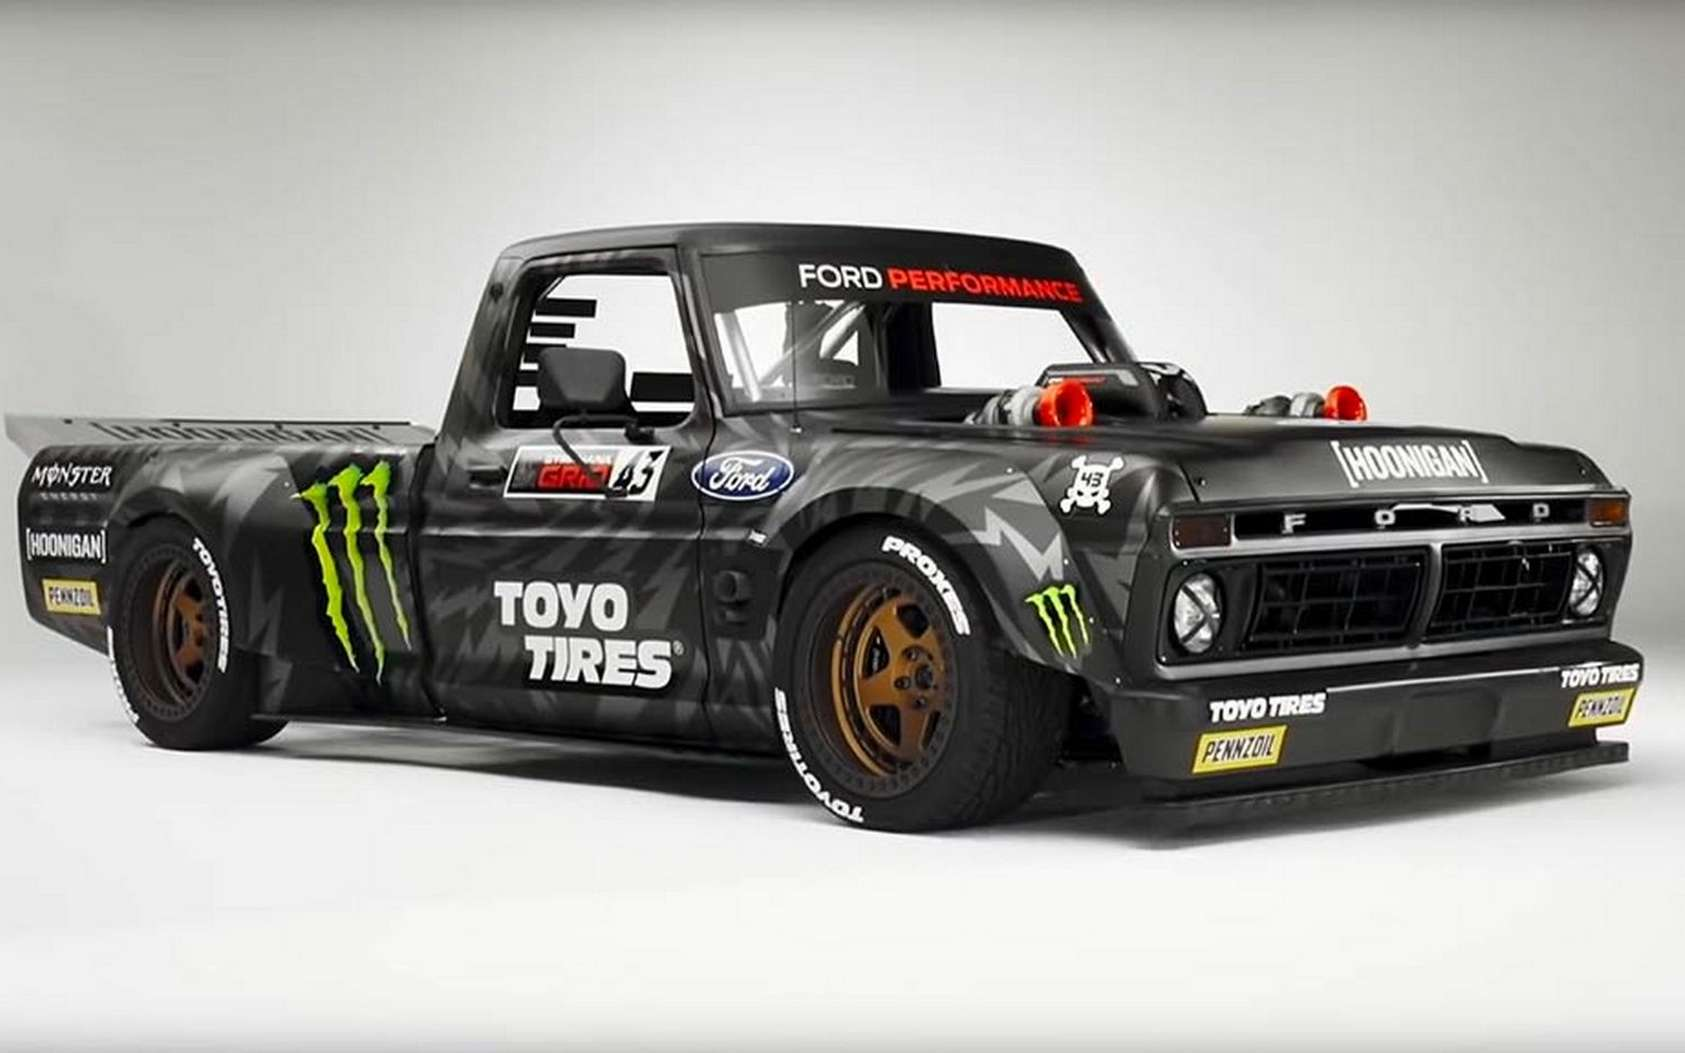 Le pick-up Hoonitruck de Ken Block et son collecteur d'air en aluminium fabriqué par Ford en impression 3D. © Ford Performance